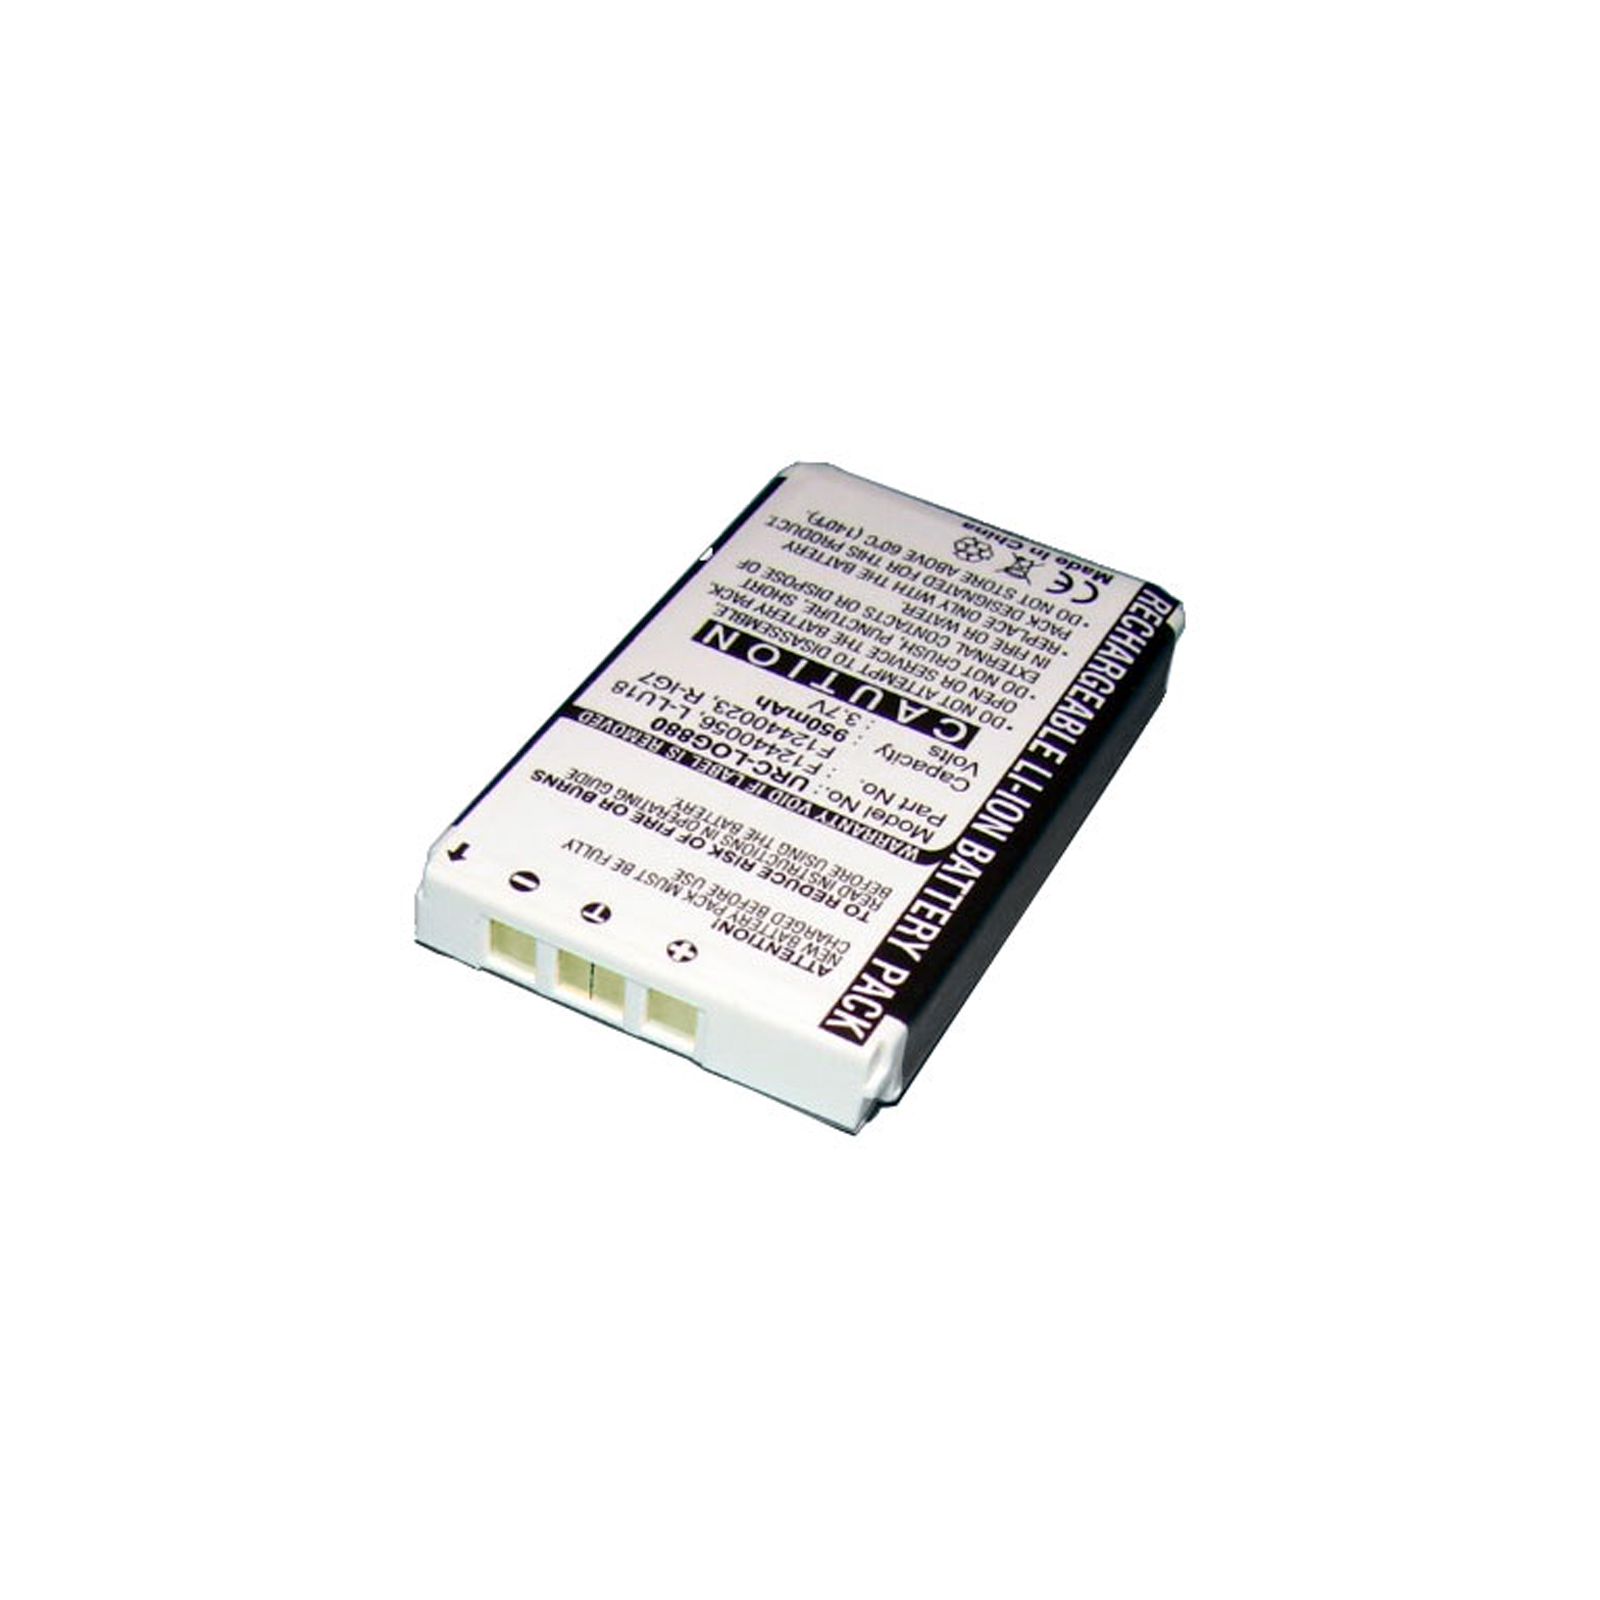 Battery For Logitech Harmony 880 One Mx 880 R Ig7 On